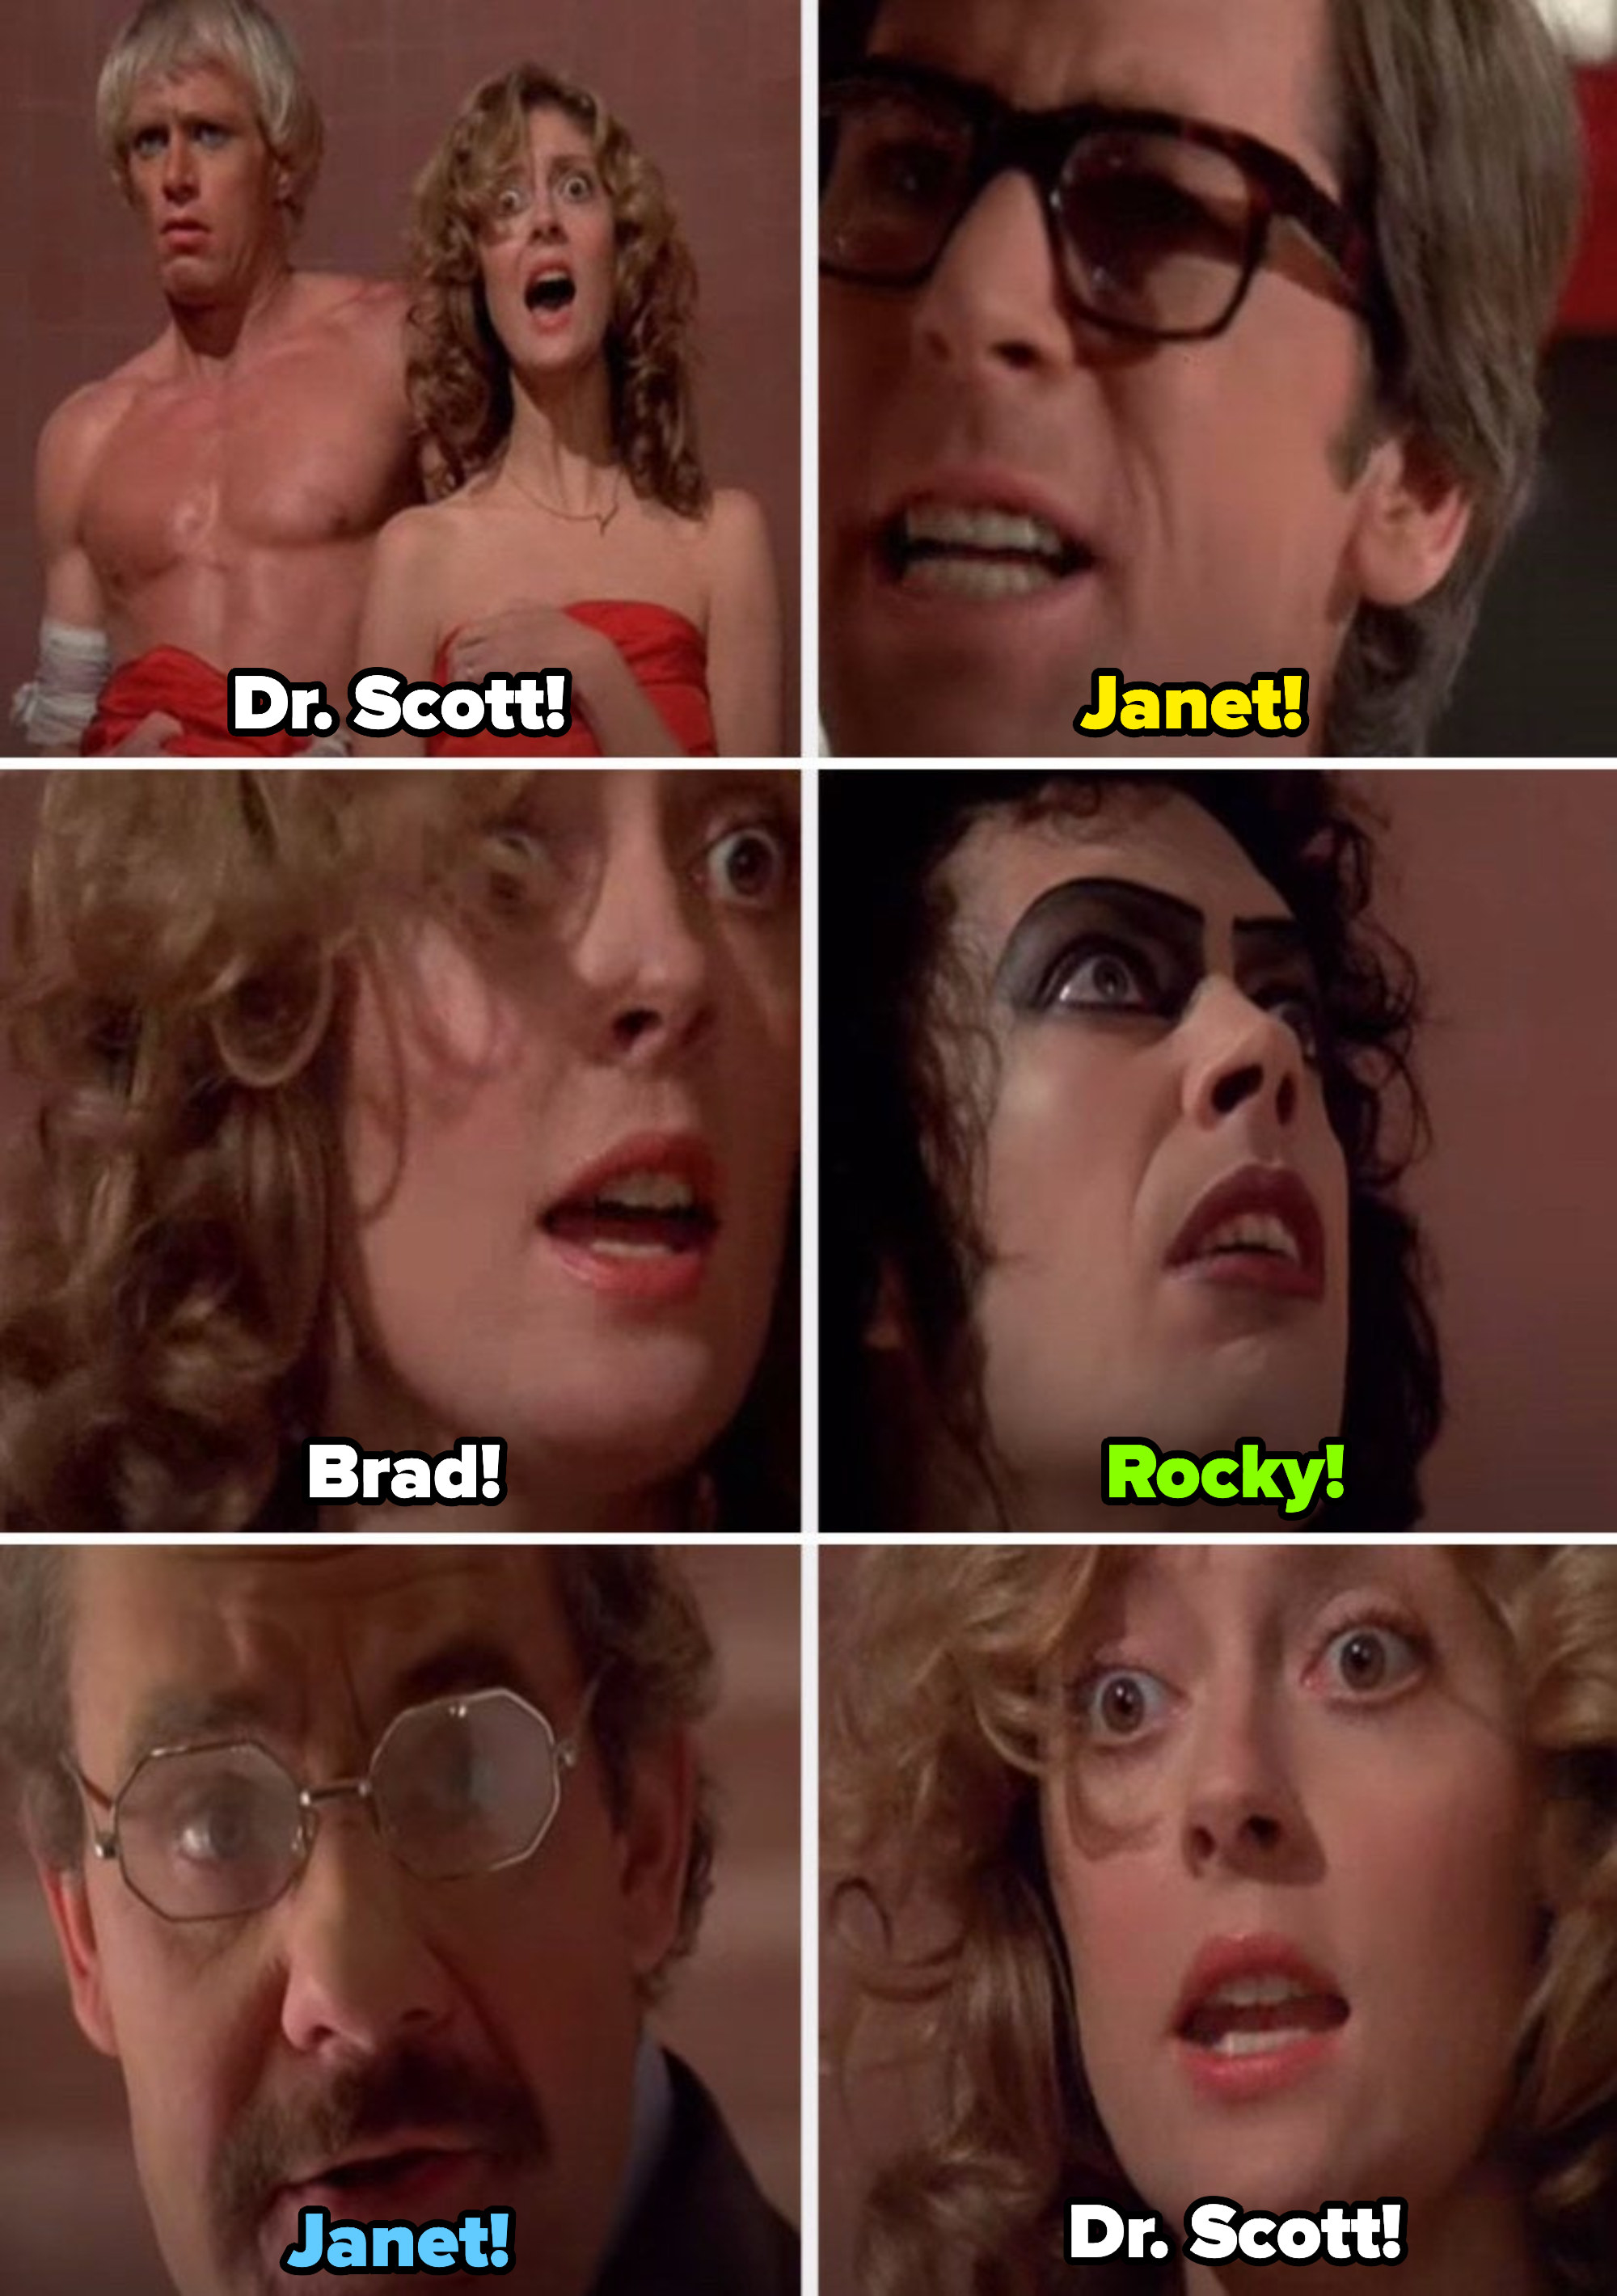 """The cast of """"The Rocky Horror Picture Show"""" yelling each other's names: """"Dr. Scott! Janet! Brad! Rocky! Janet! Dr. Scott!"""""""